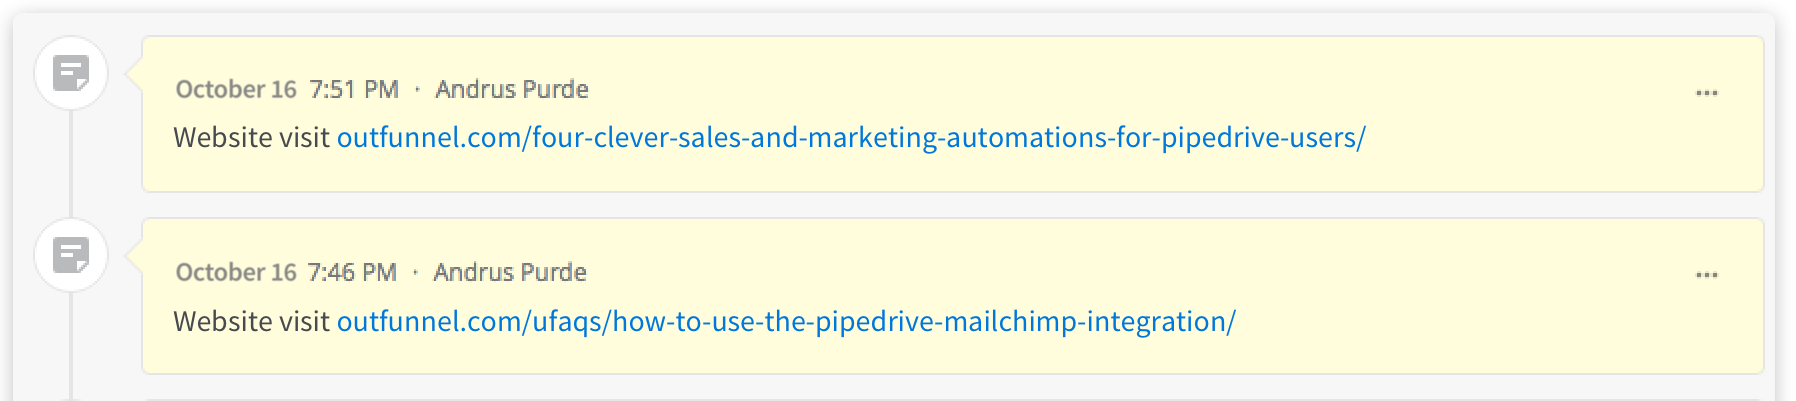 Outfunnel's web tracking feature sends information to Pipedrive